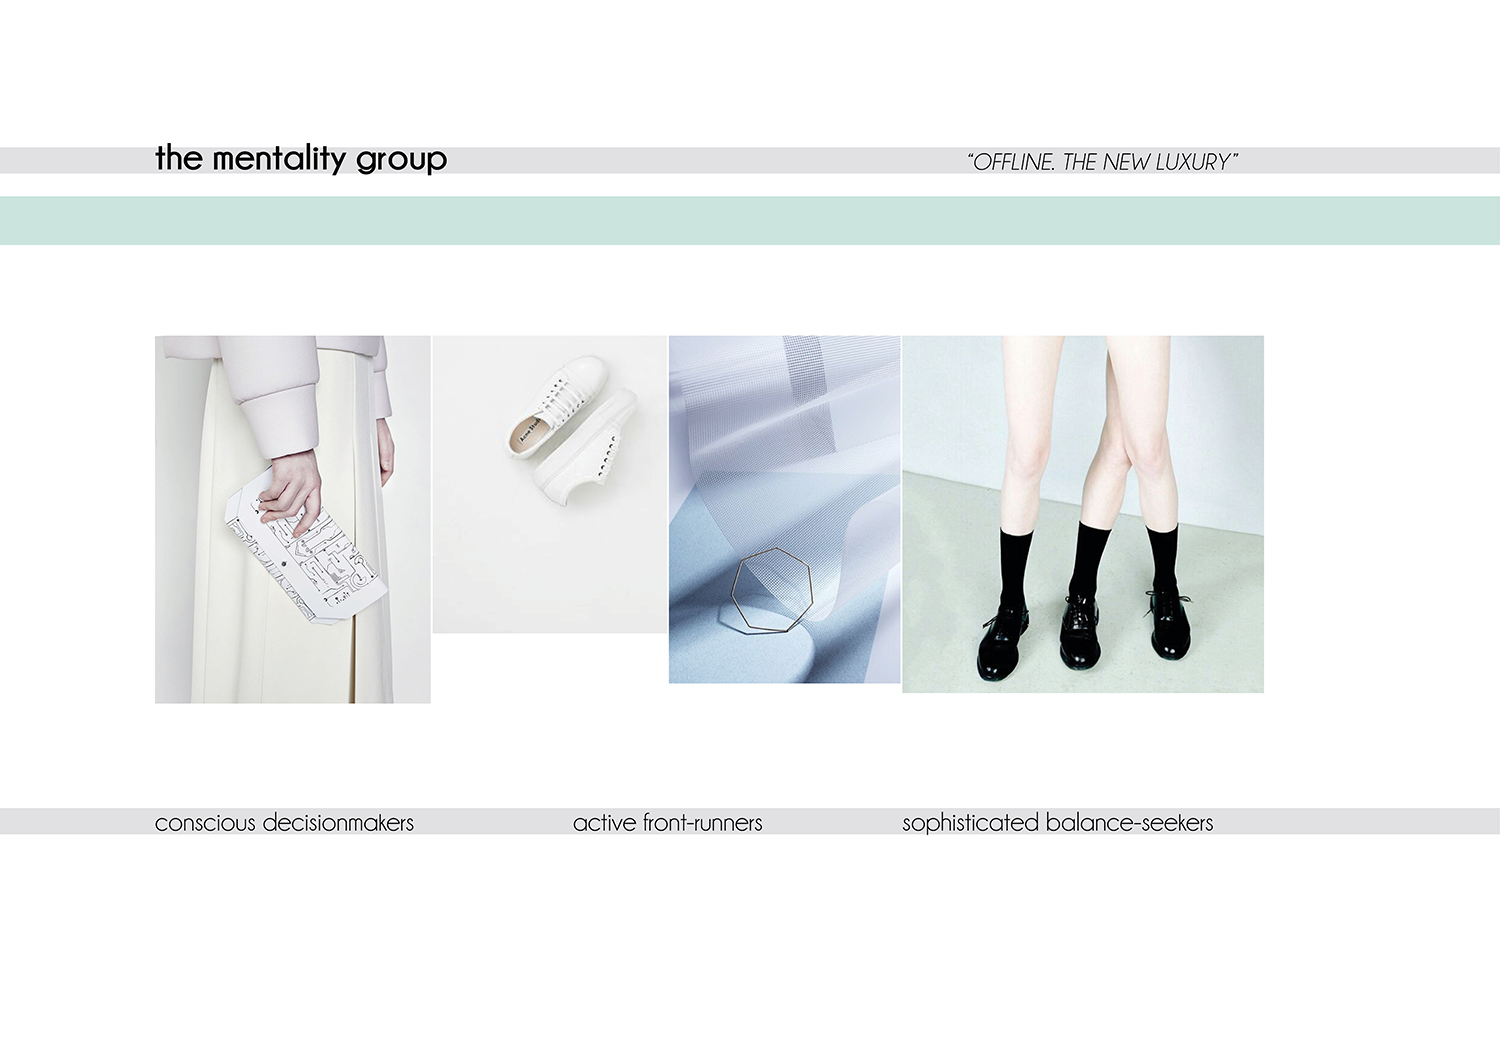 The targeted mentality group of the Offline Collection.